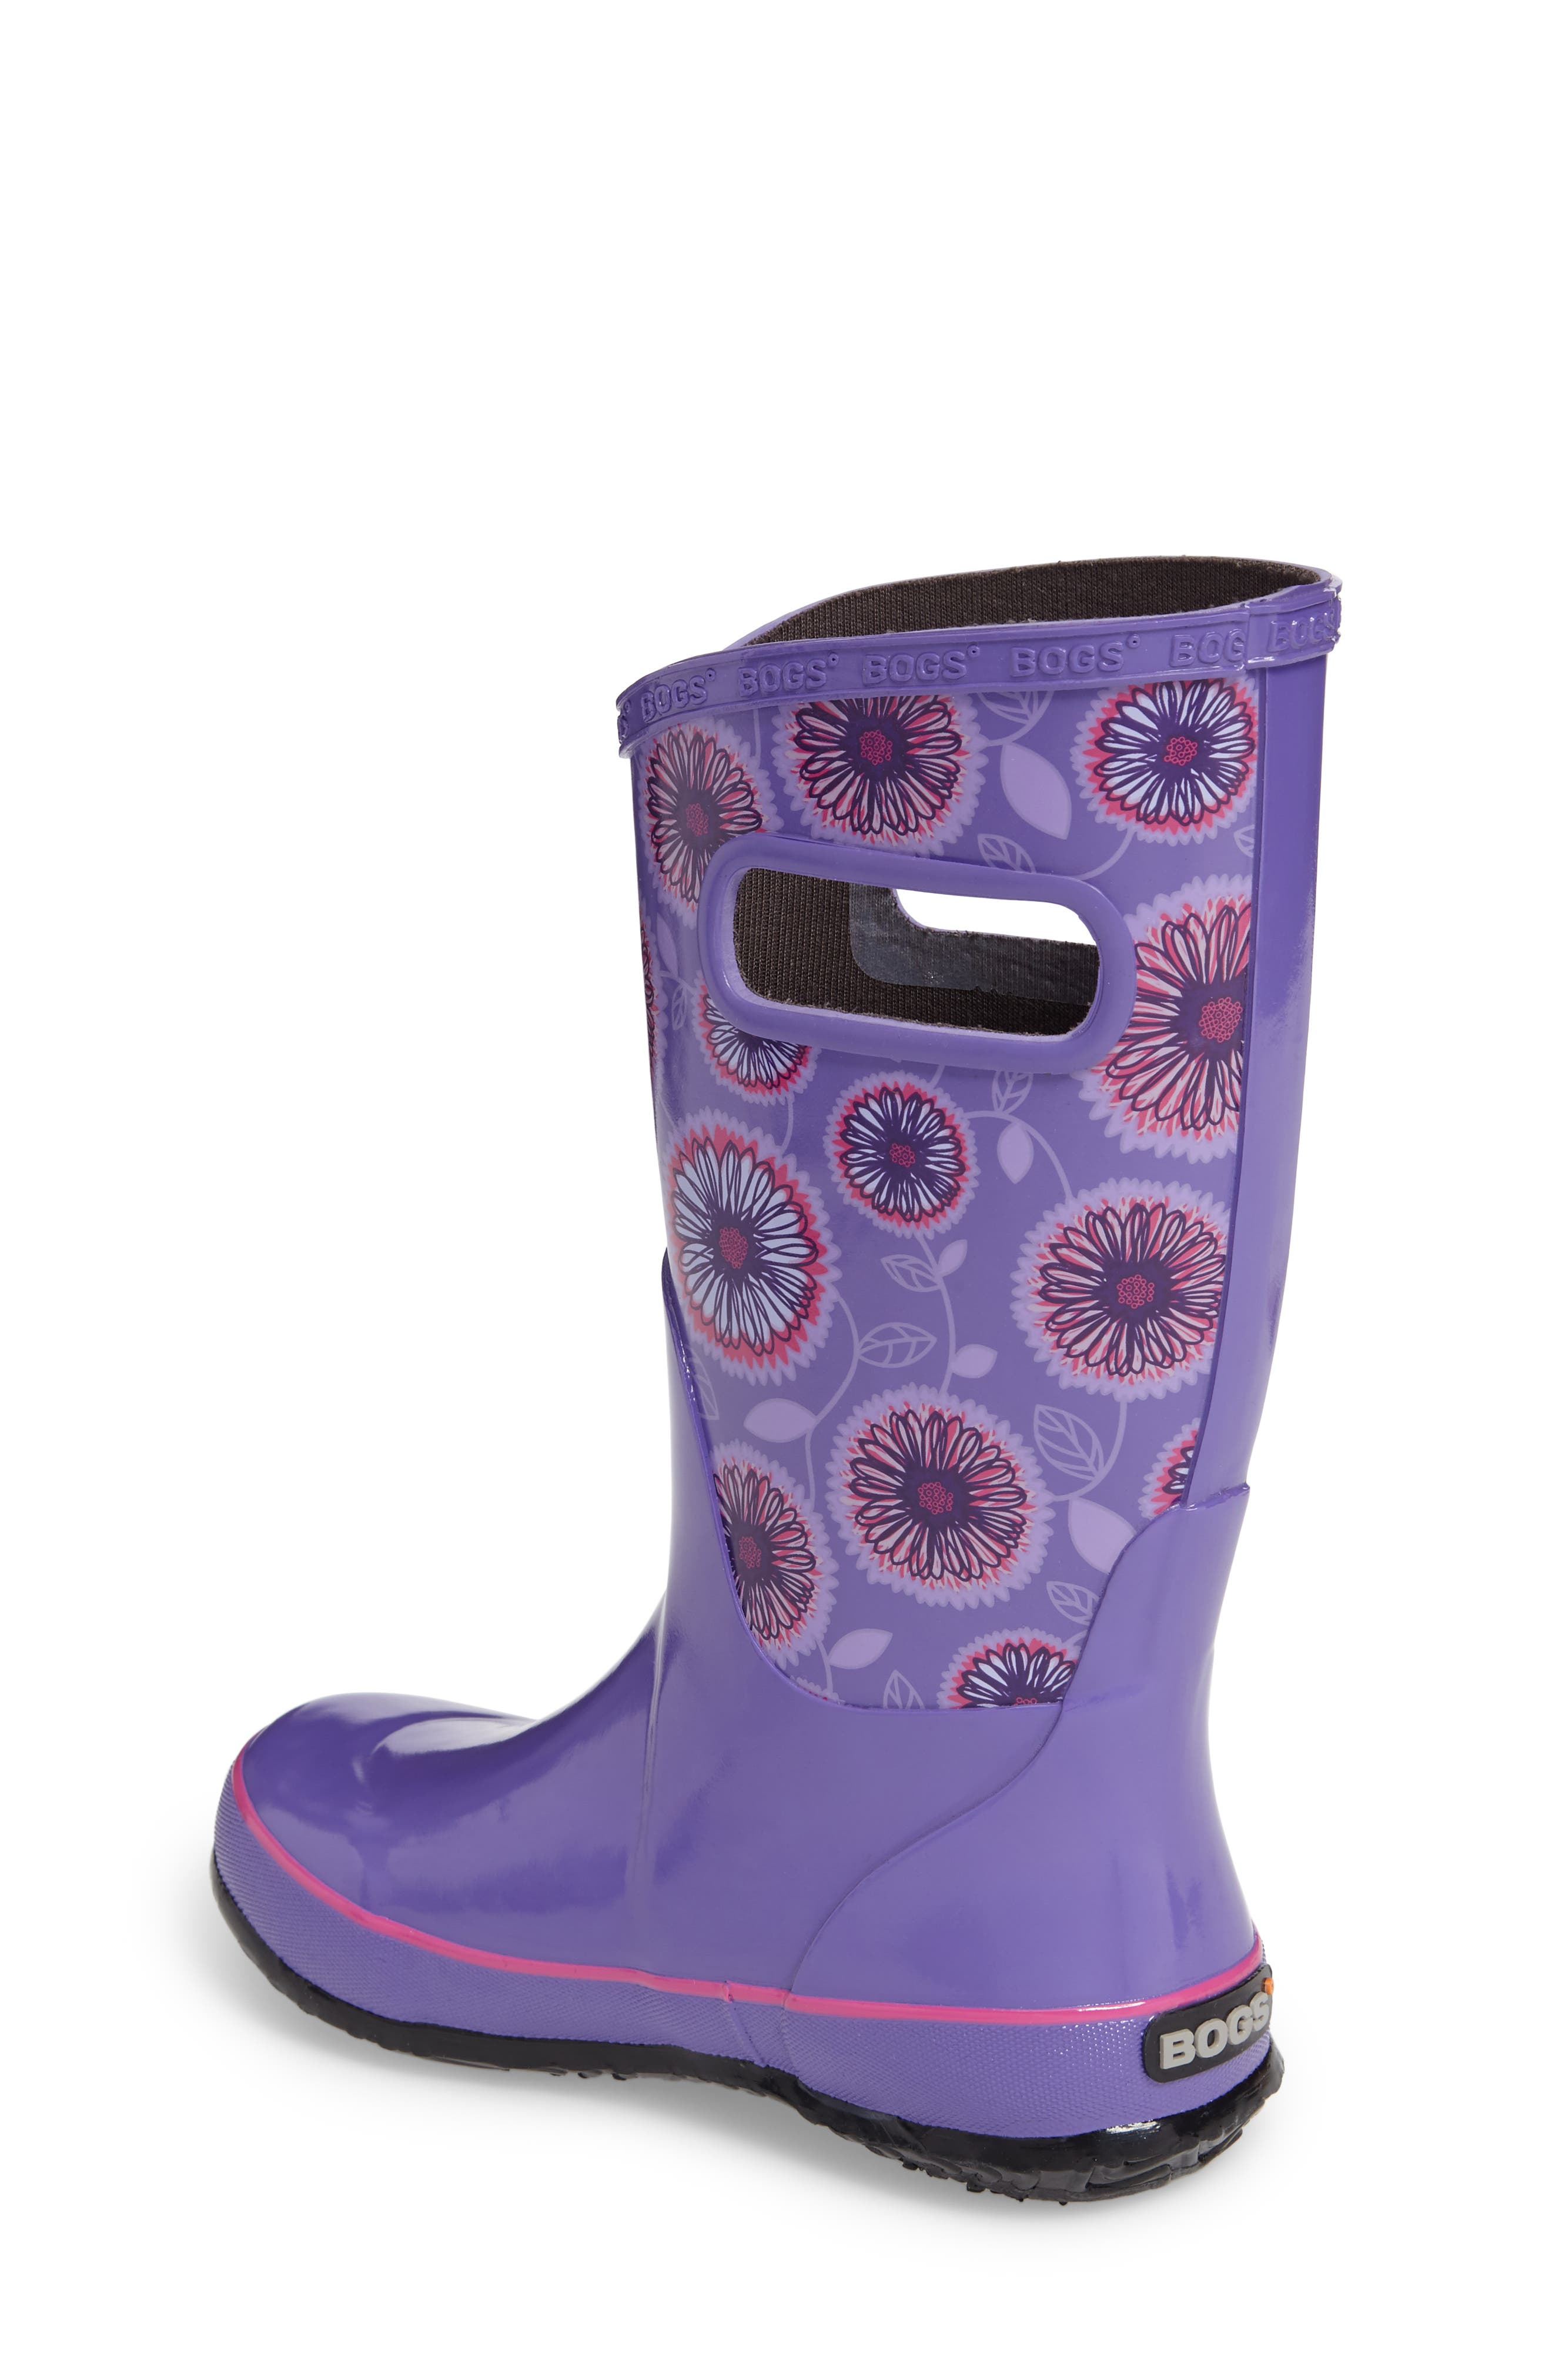 Wildflowers Rubber Rain Boot,                             Alternate thumbnail 2, color,                             Violet Multi